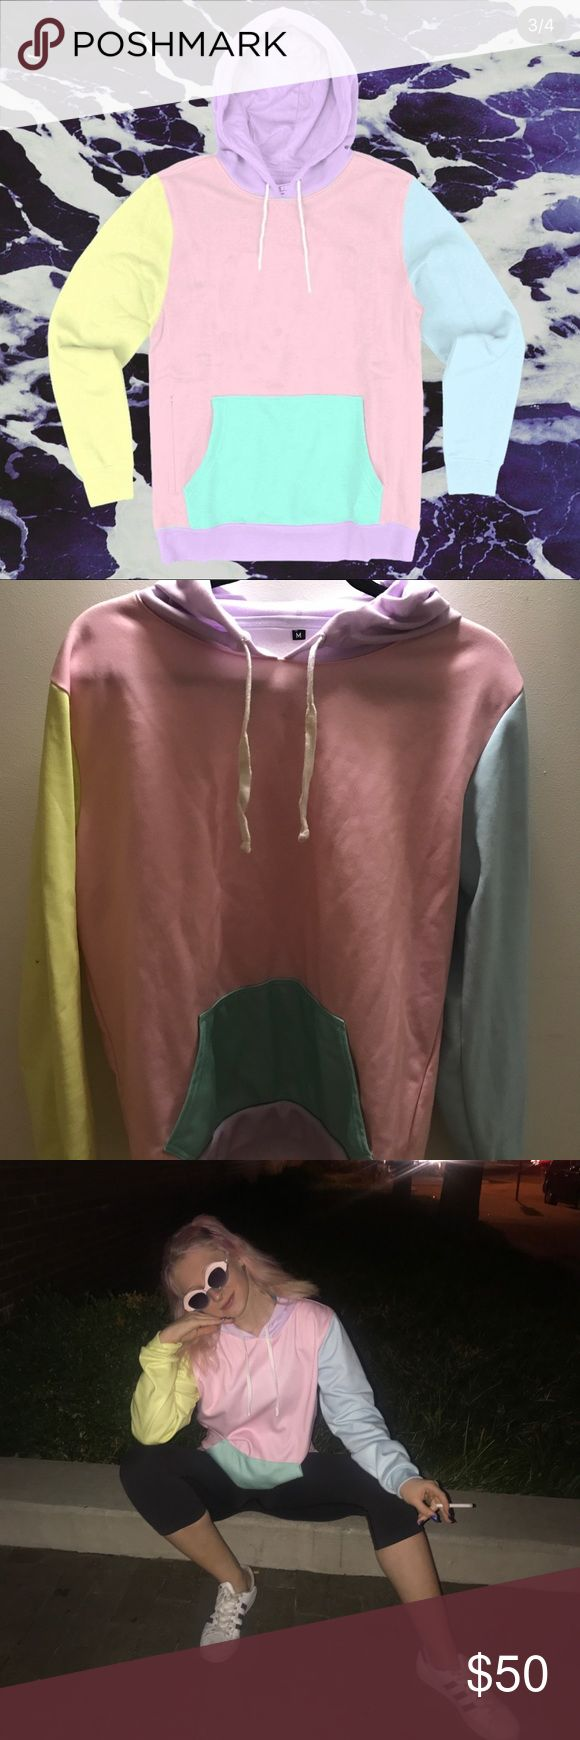 Pastel colorful hoodie Found from Instagram ad, worn twice. So cute and fun Tops Sweatshirts & Hoodies